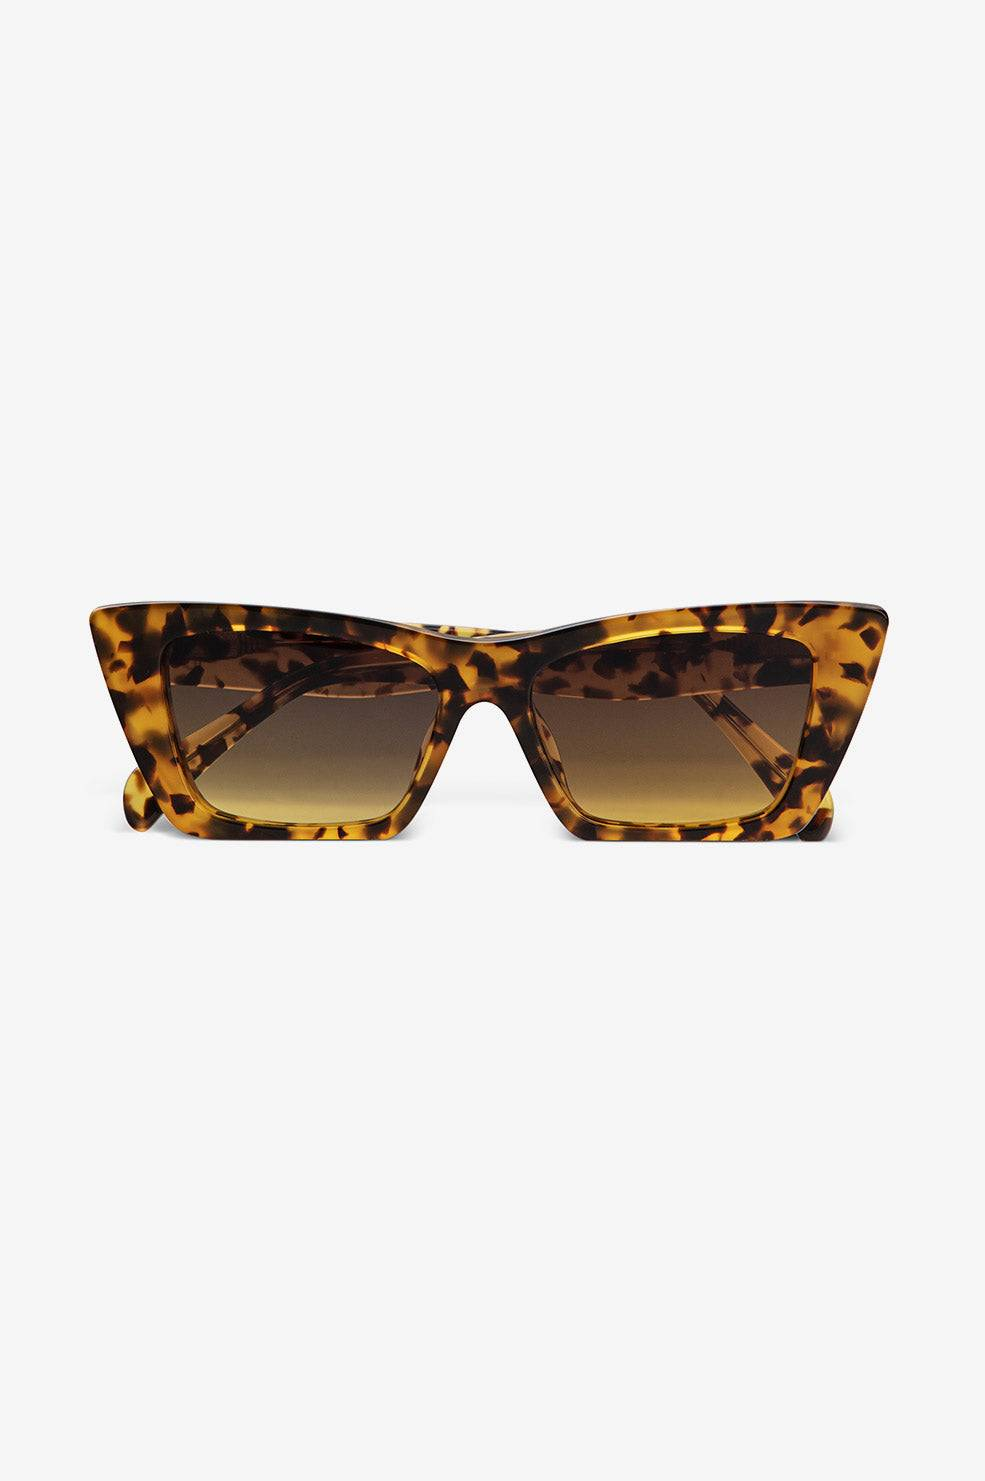 ANINE BING Levi Sunglasses in Tortoise  - Size: One Size